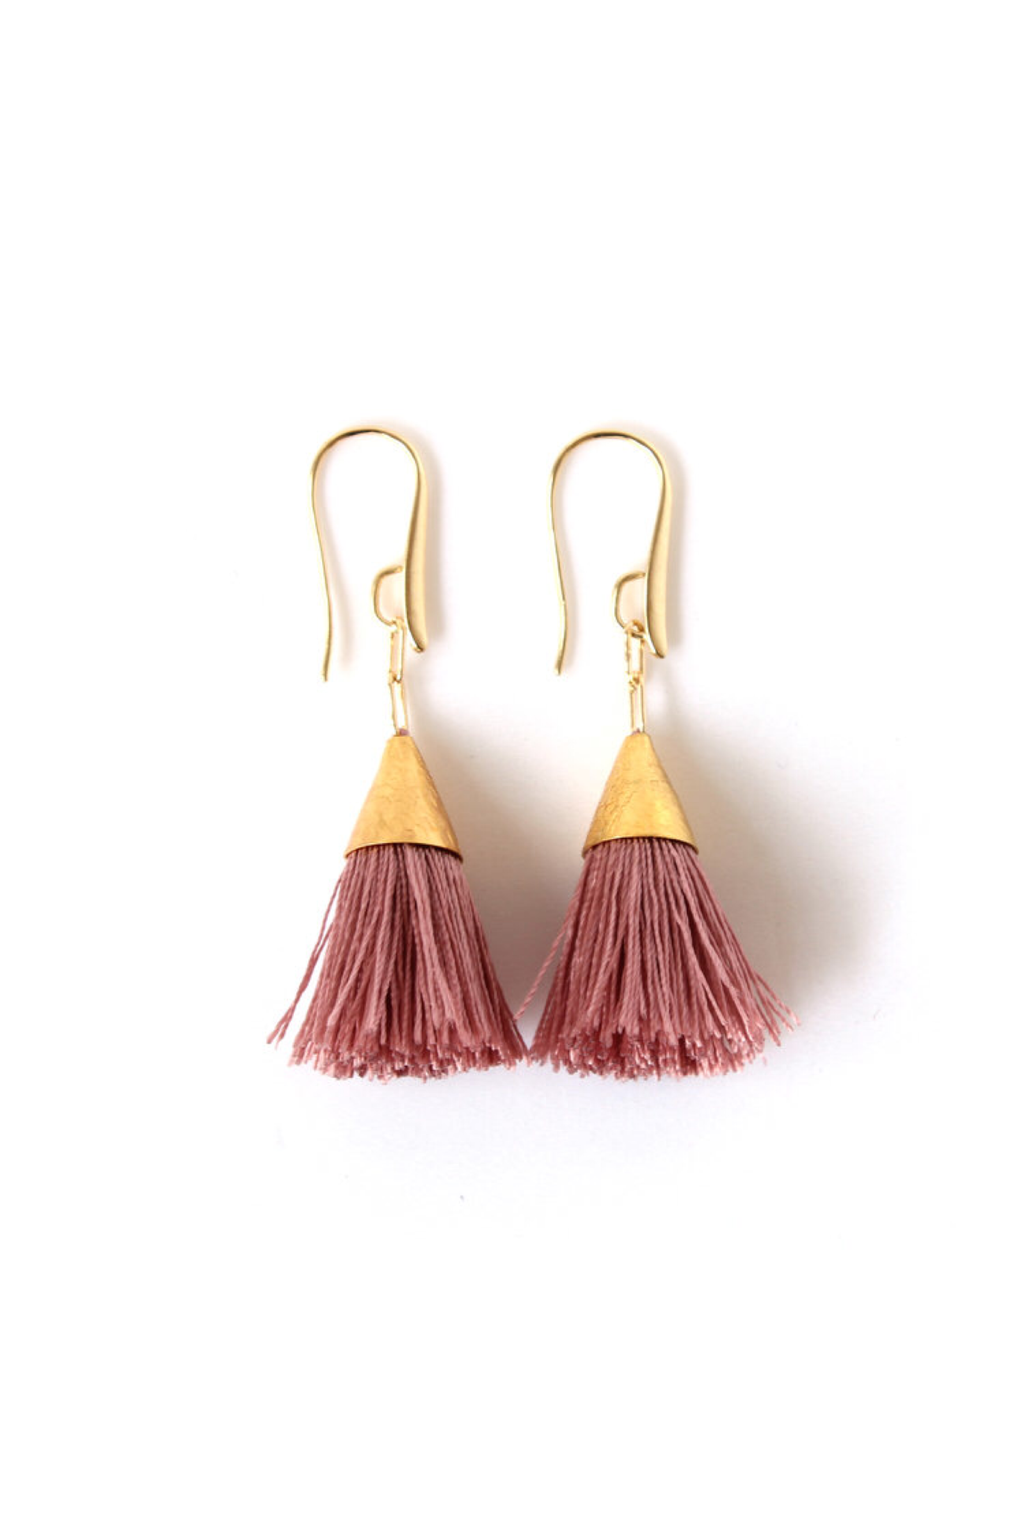 Blush Kate Tassel Earrings - ROSE MADE SHOP